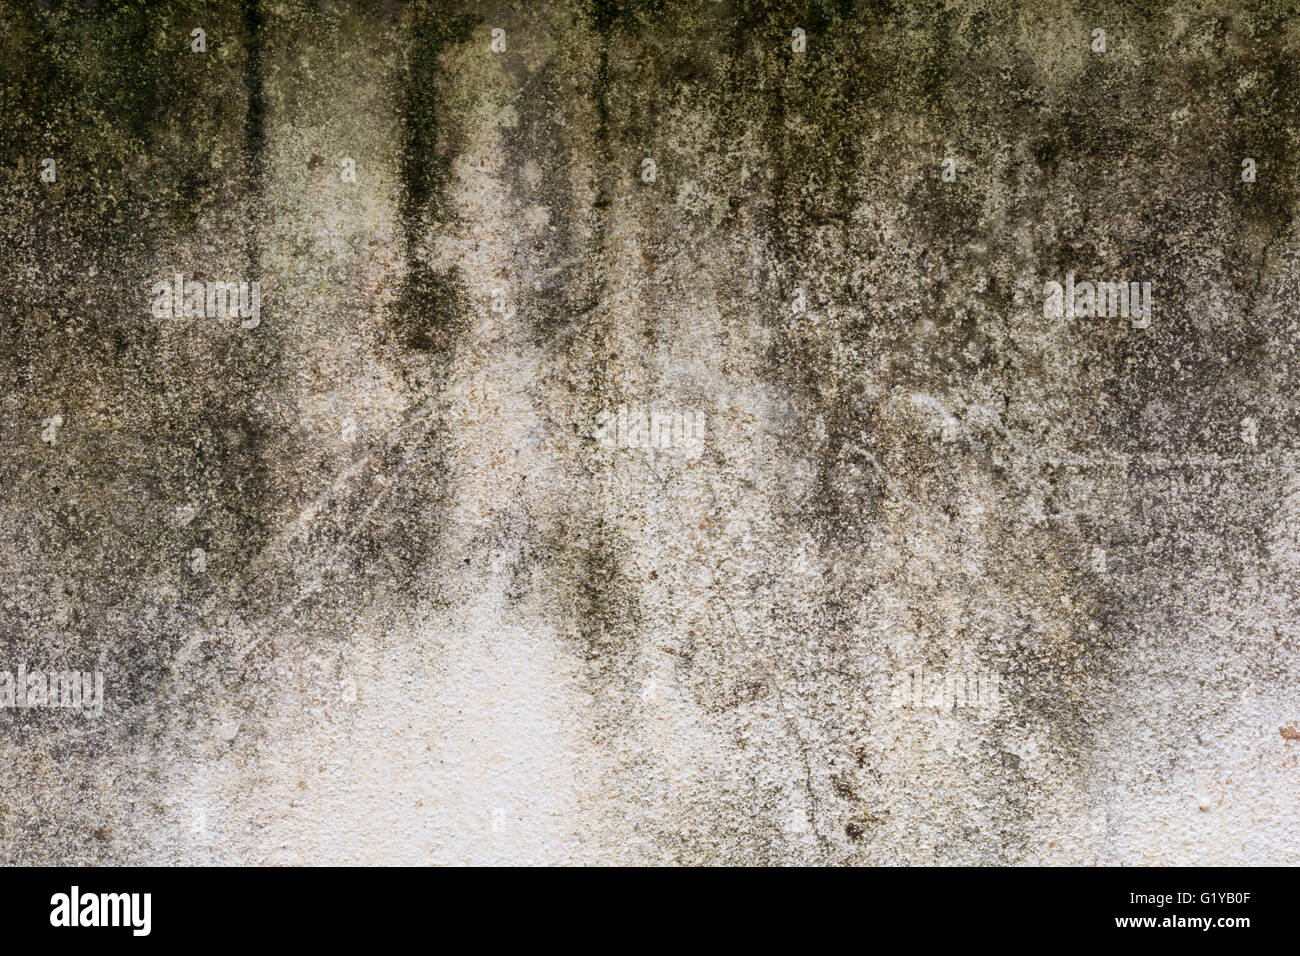 Mouldy Walls Stock Photos Amp Mouldy Walls Stock Images Alamy